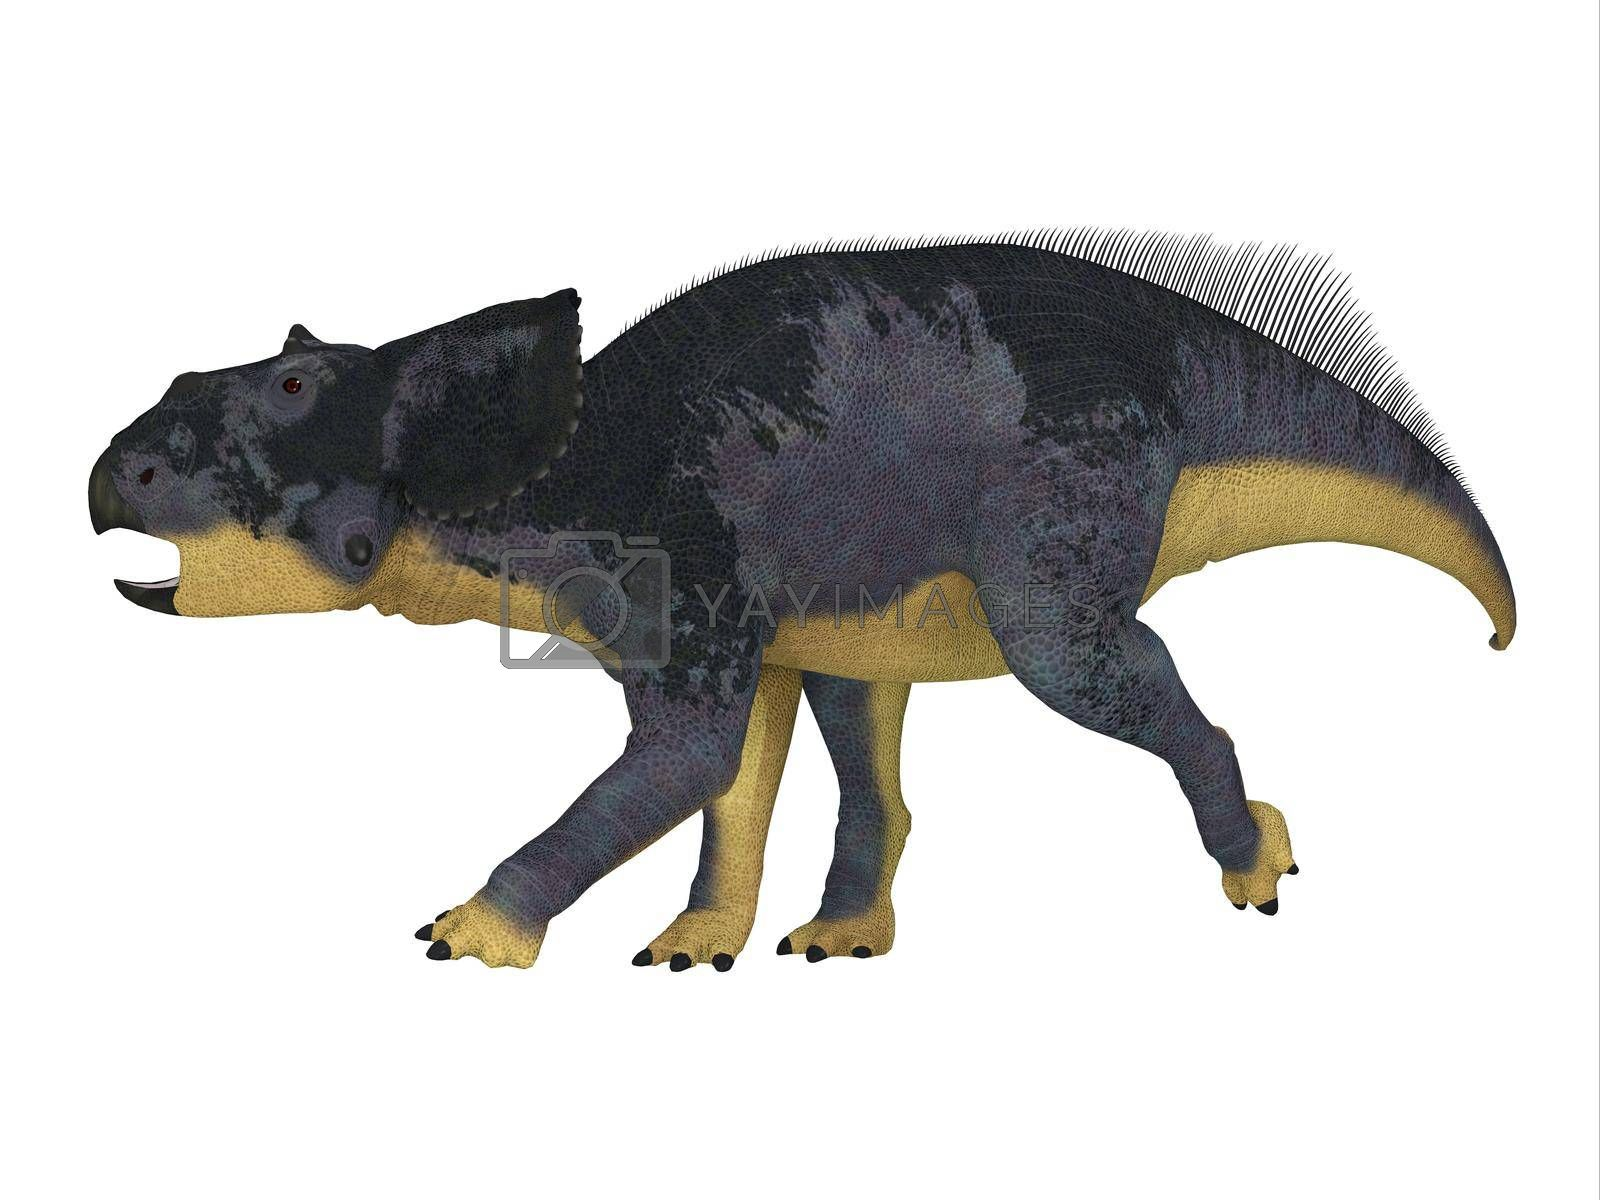 Chasmosaurus was a Ceratopsian herbivorous dinosaur that lived in Alberta, Canada during the Cretaceous Period.